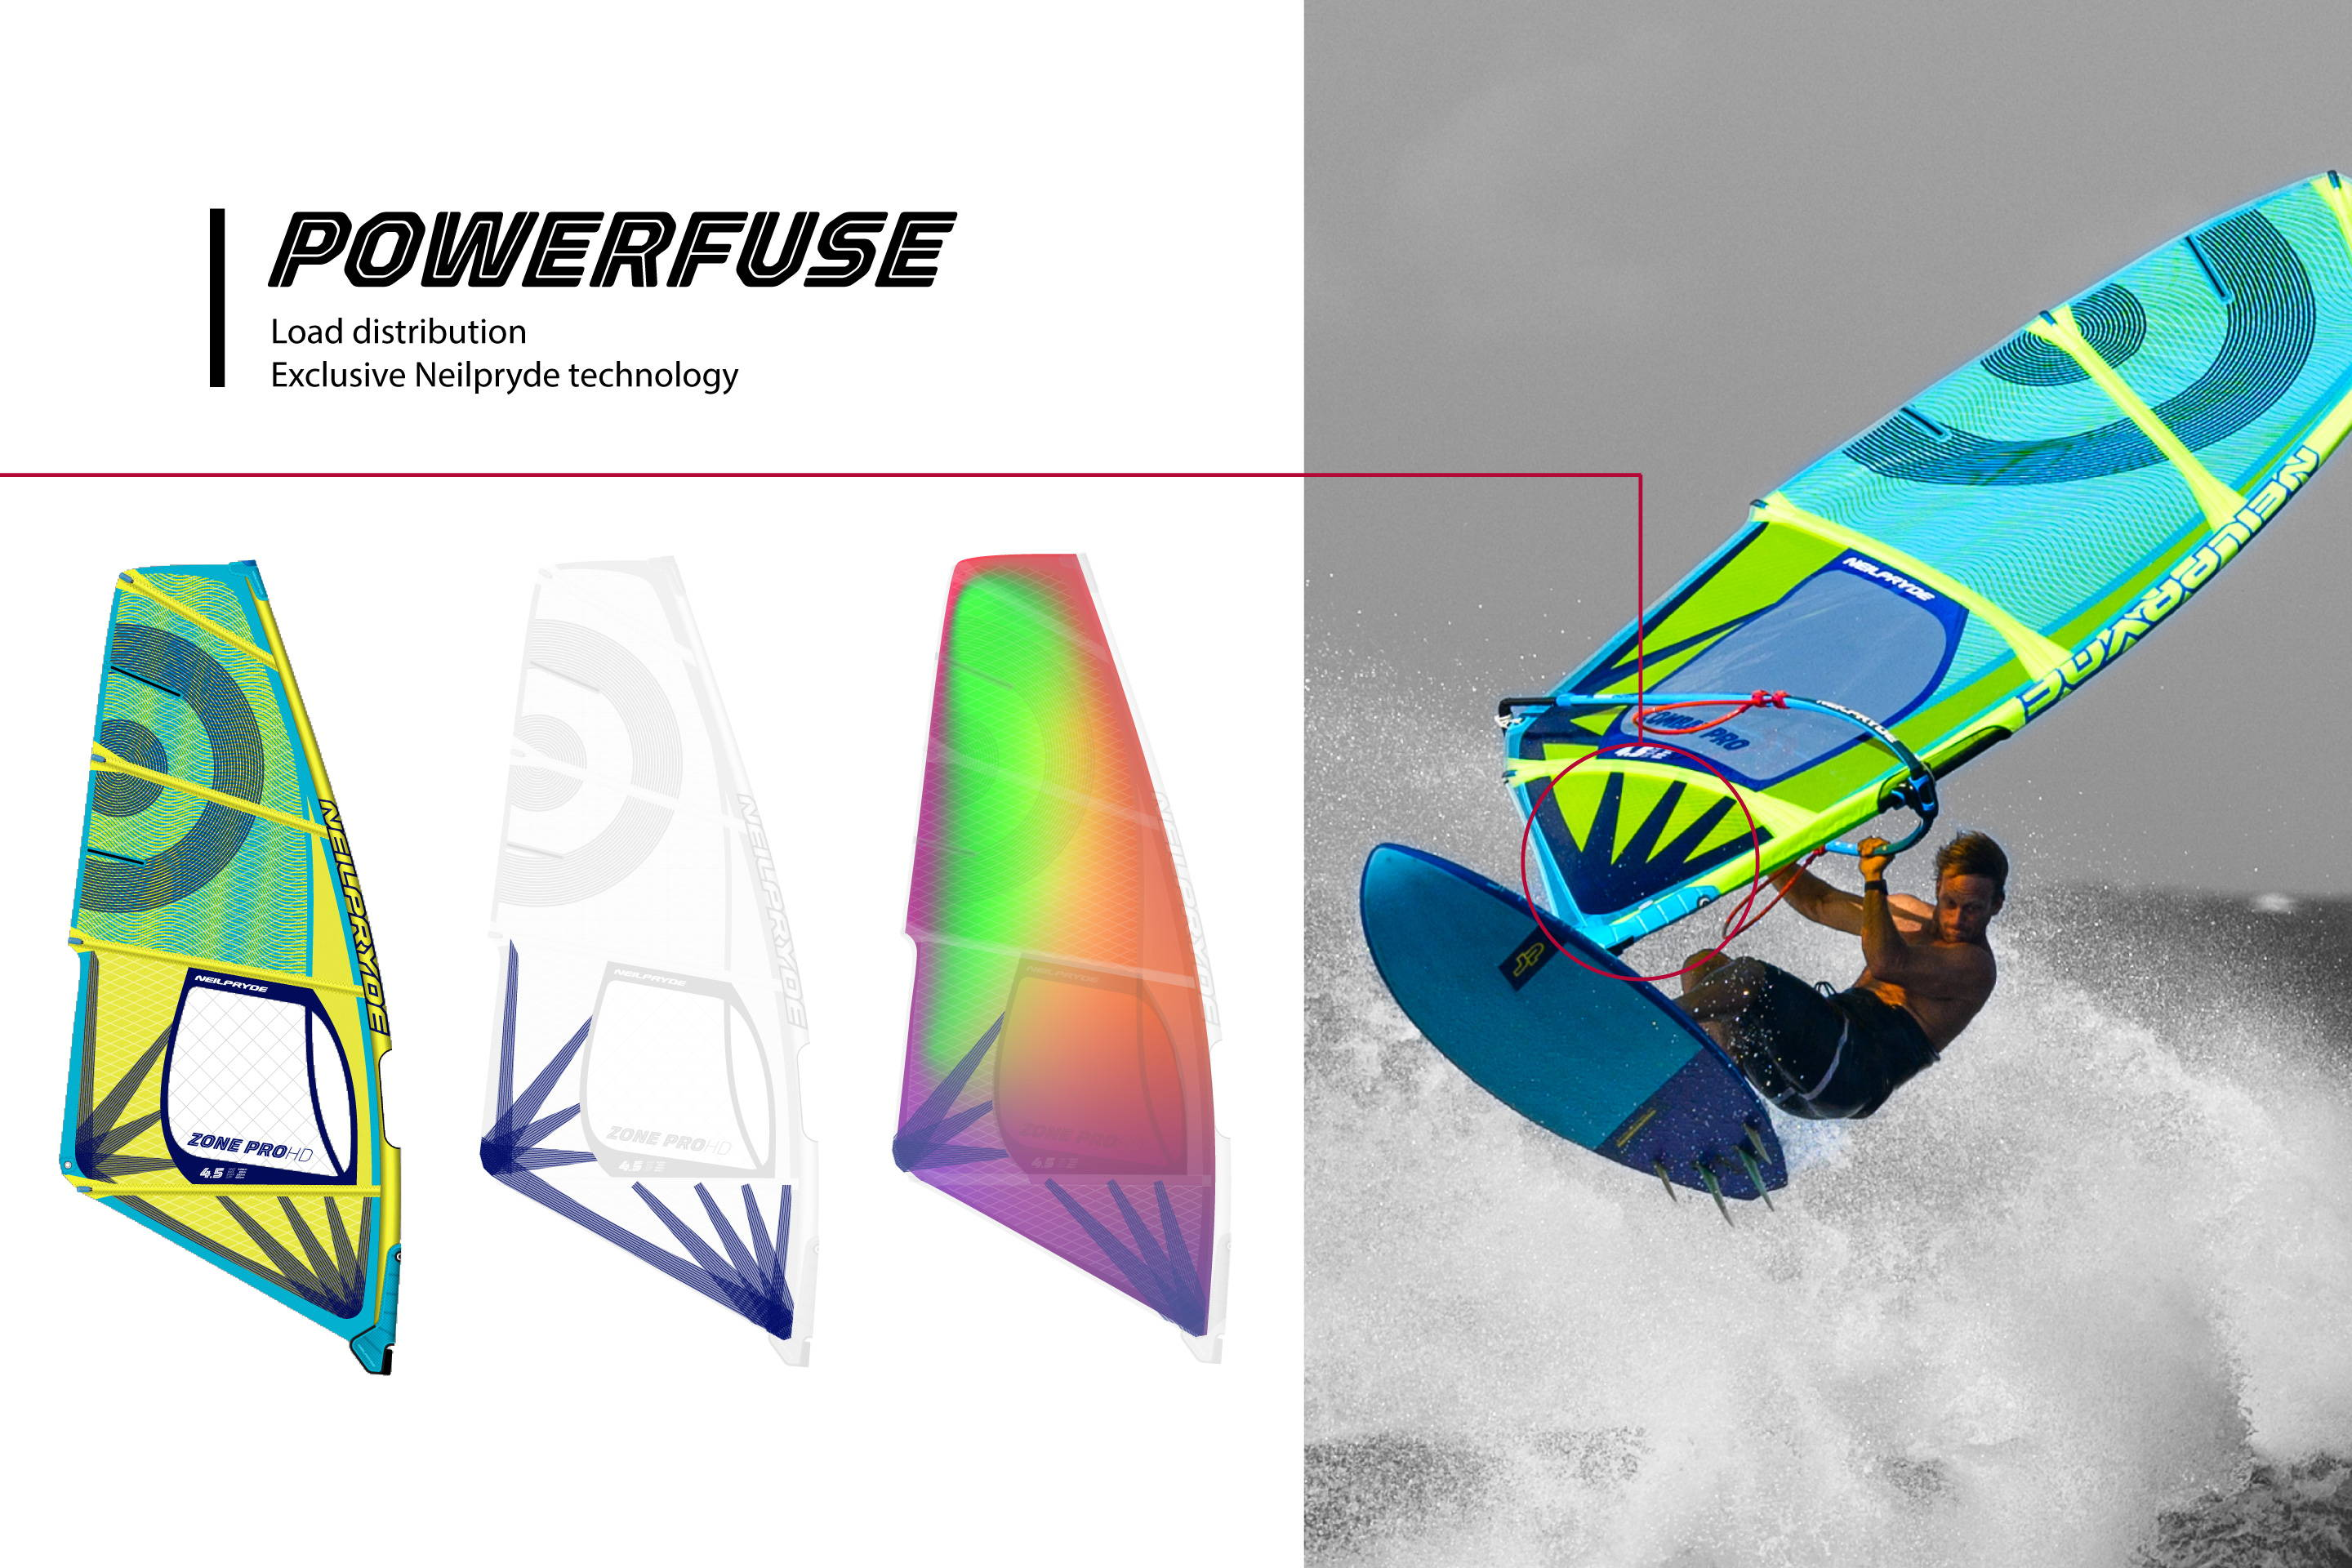 NeilPryde Powerfuse